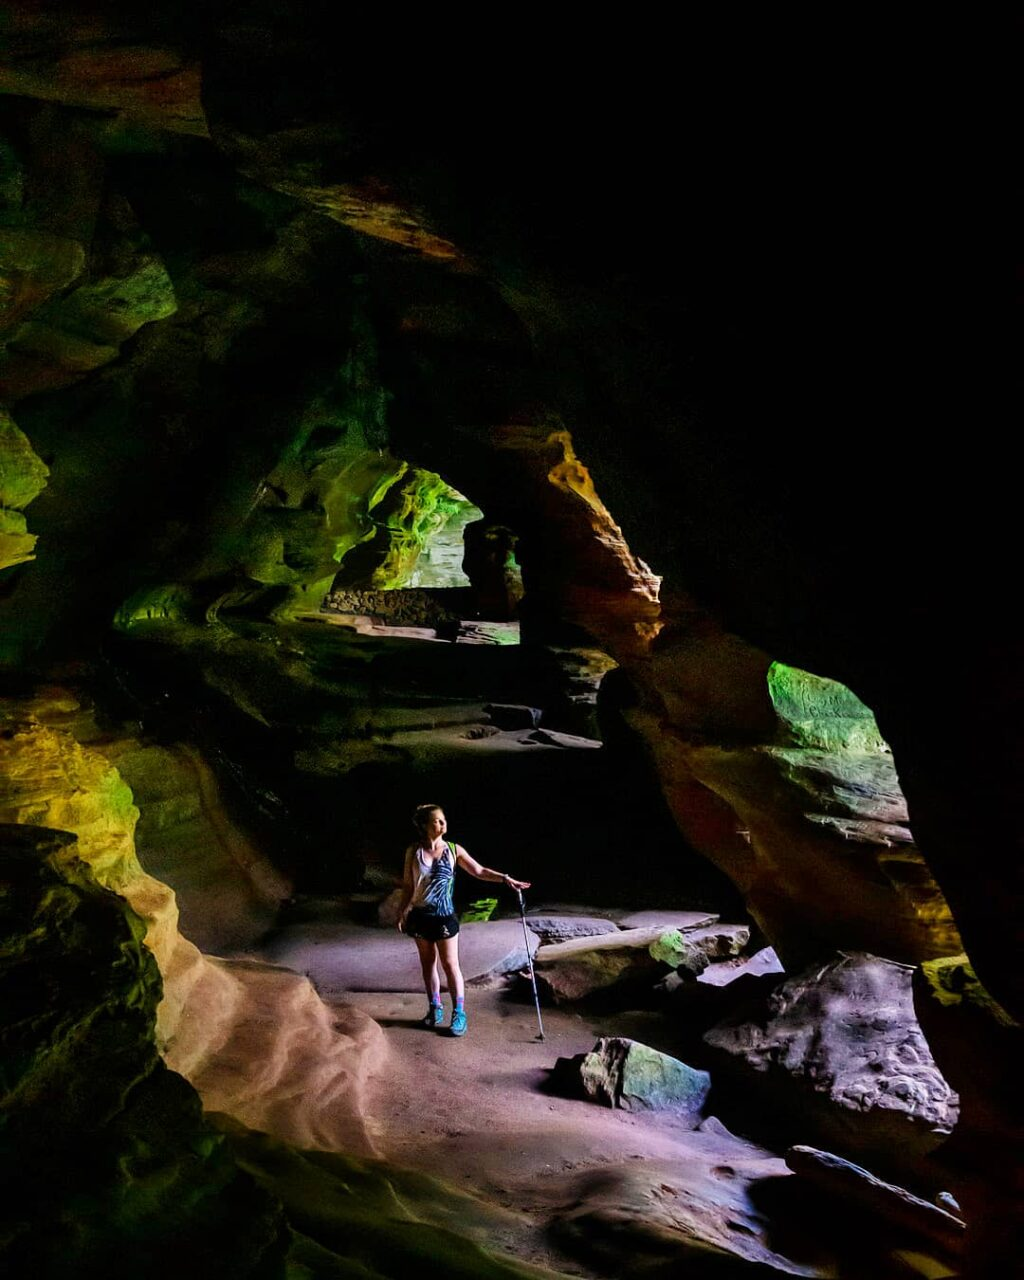 Woman hiker illuminated in the middle of Rock House Cave.